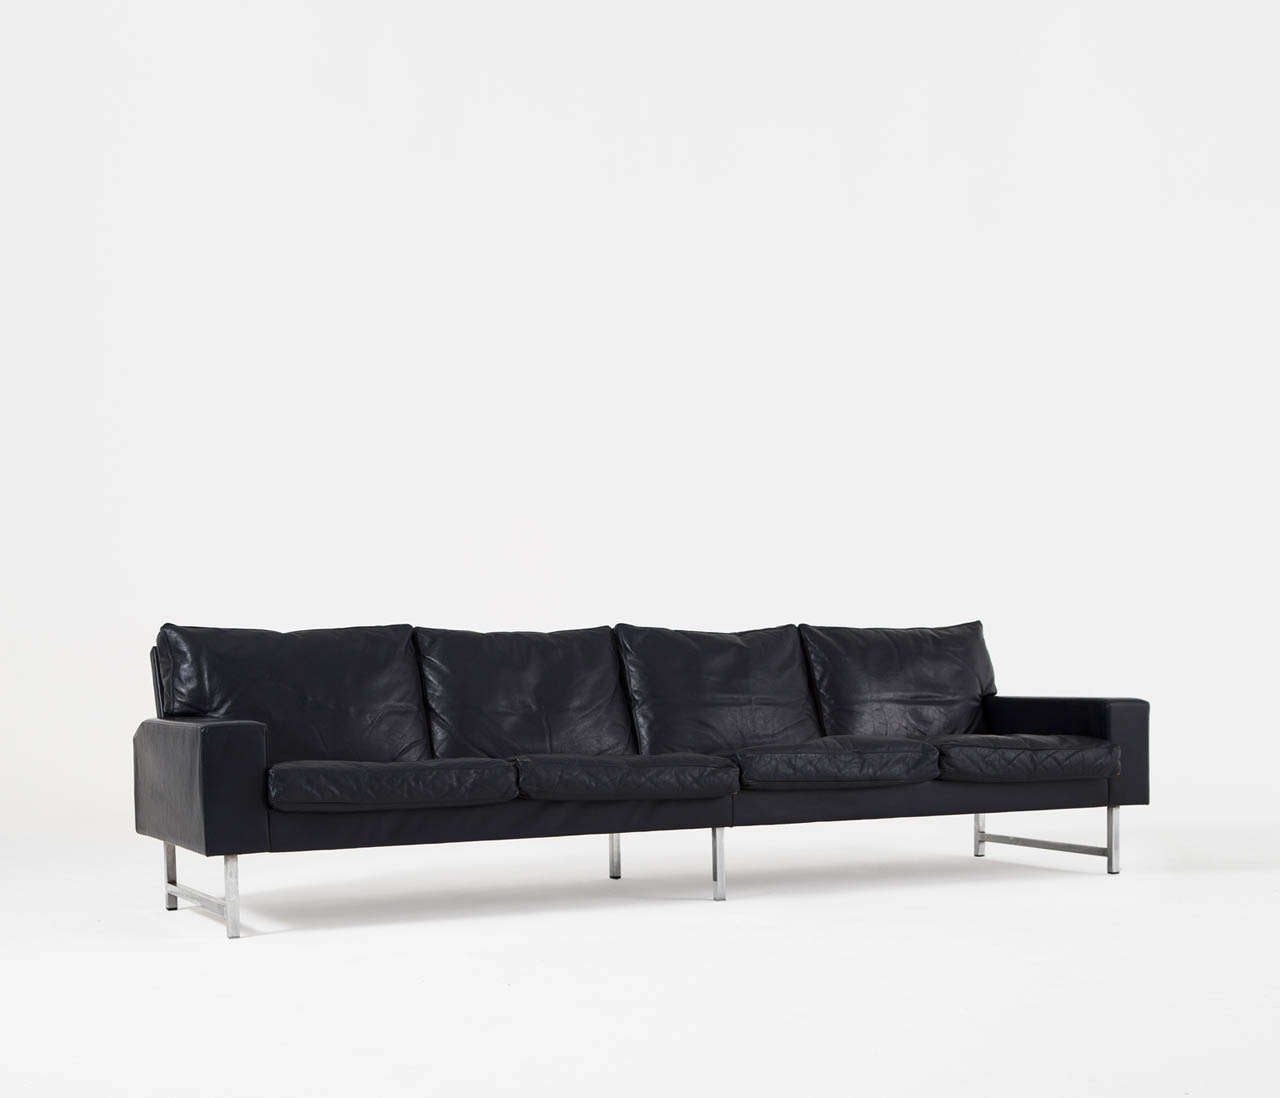 Extrem Big Sofa Extreme Long 4 Seater Sofa Upholstered In Original Night